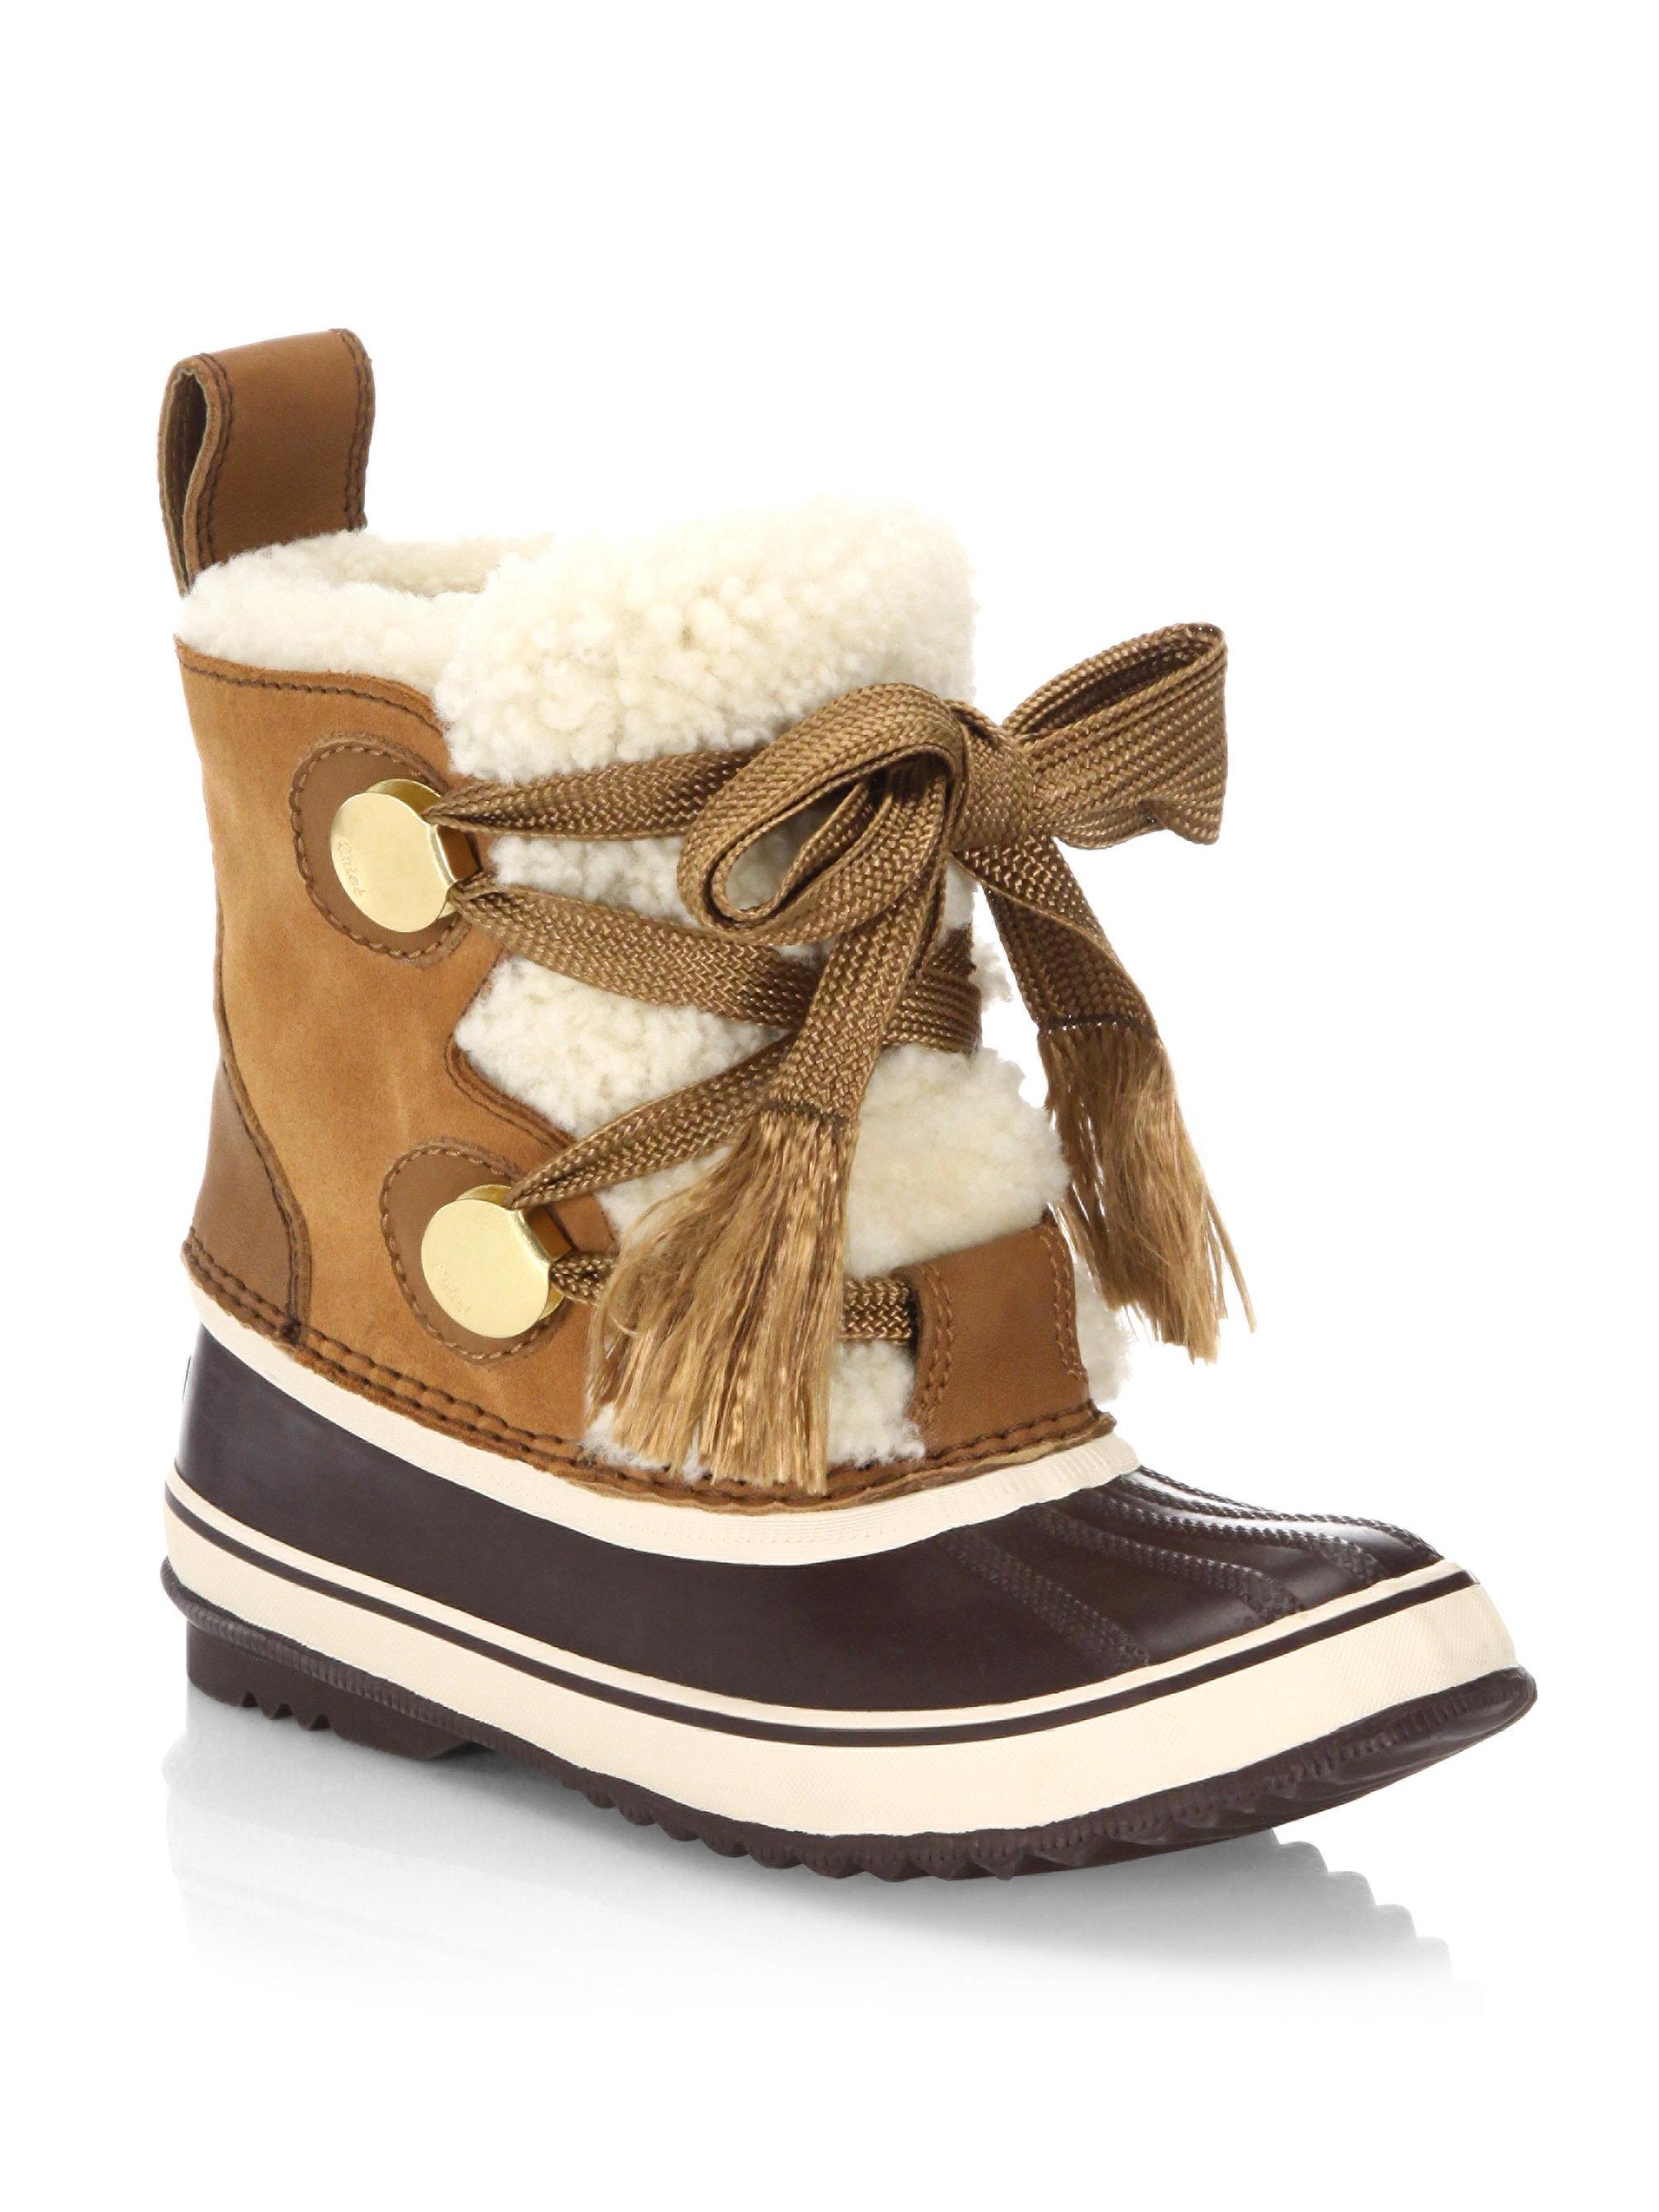 Chloé Sorel X Shearling Weather Boots